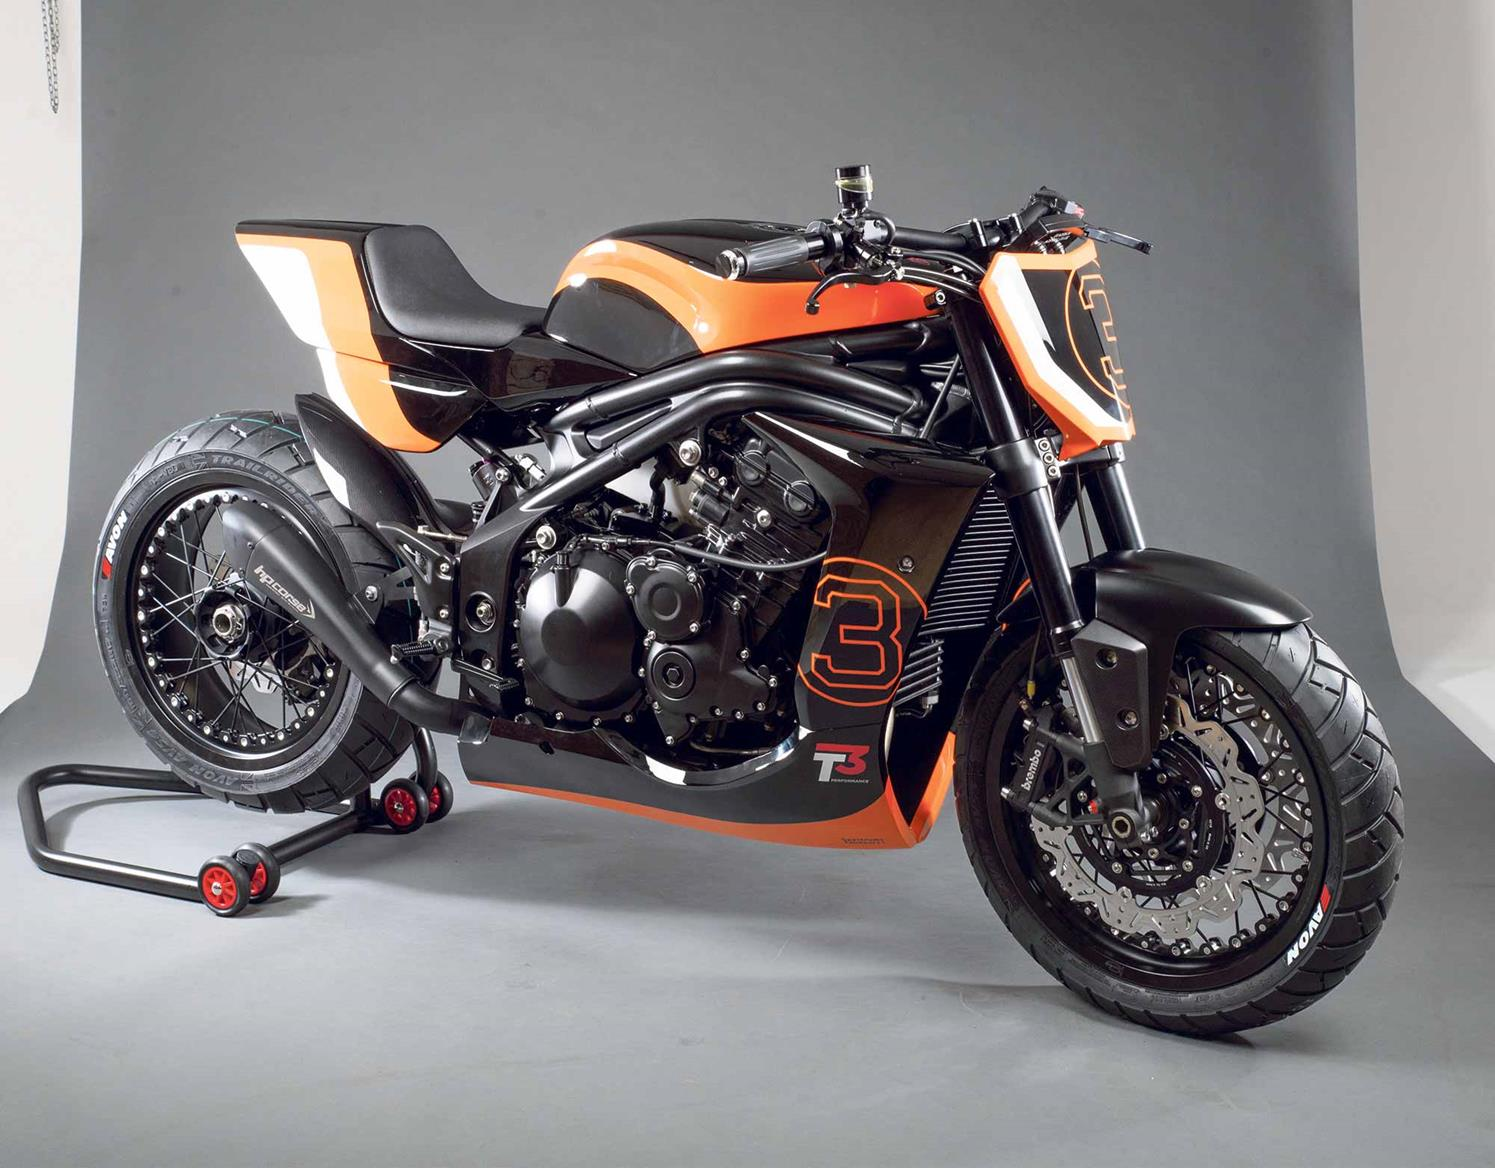 The Gemini Indianapolis is a flat track inspired machine